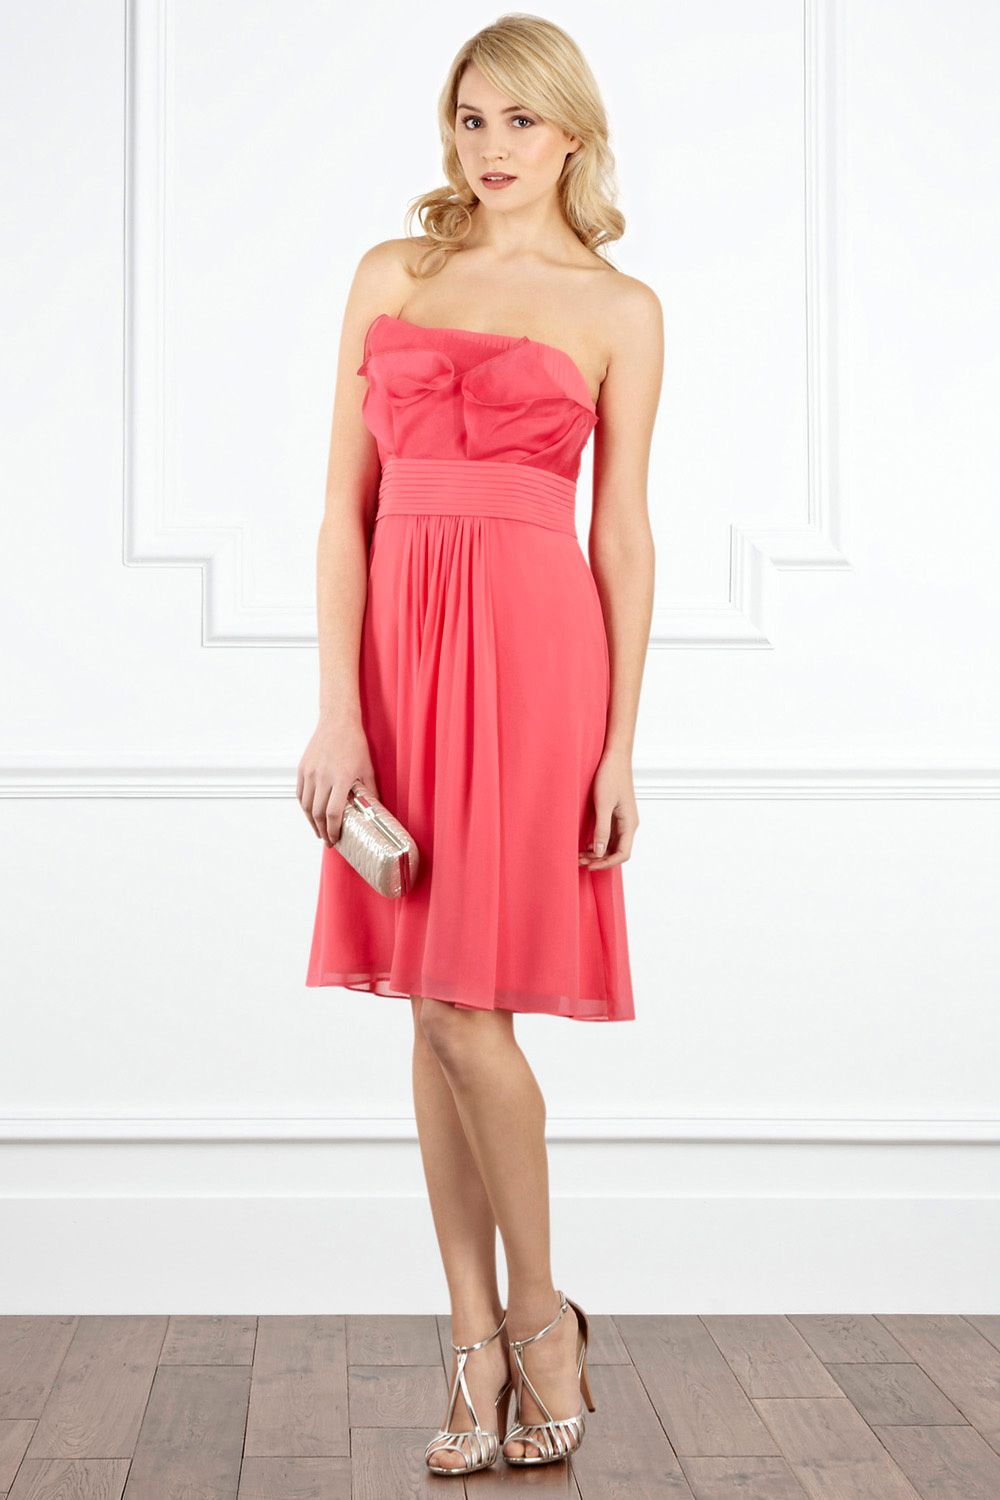 A breathtaking short bandeau dress with structured bust detail the